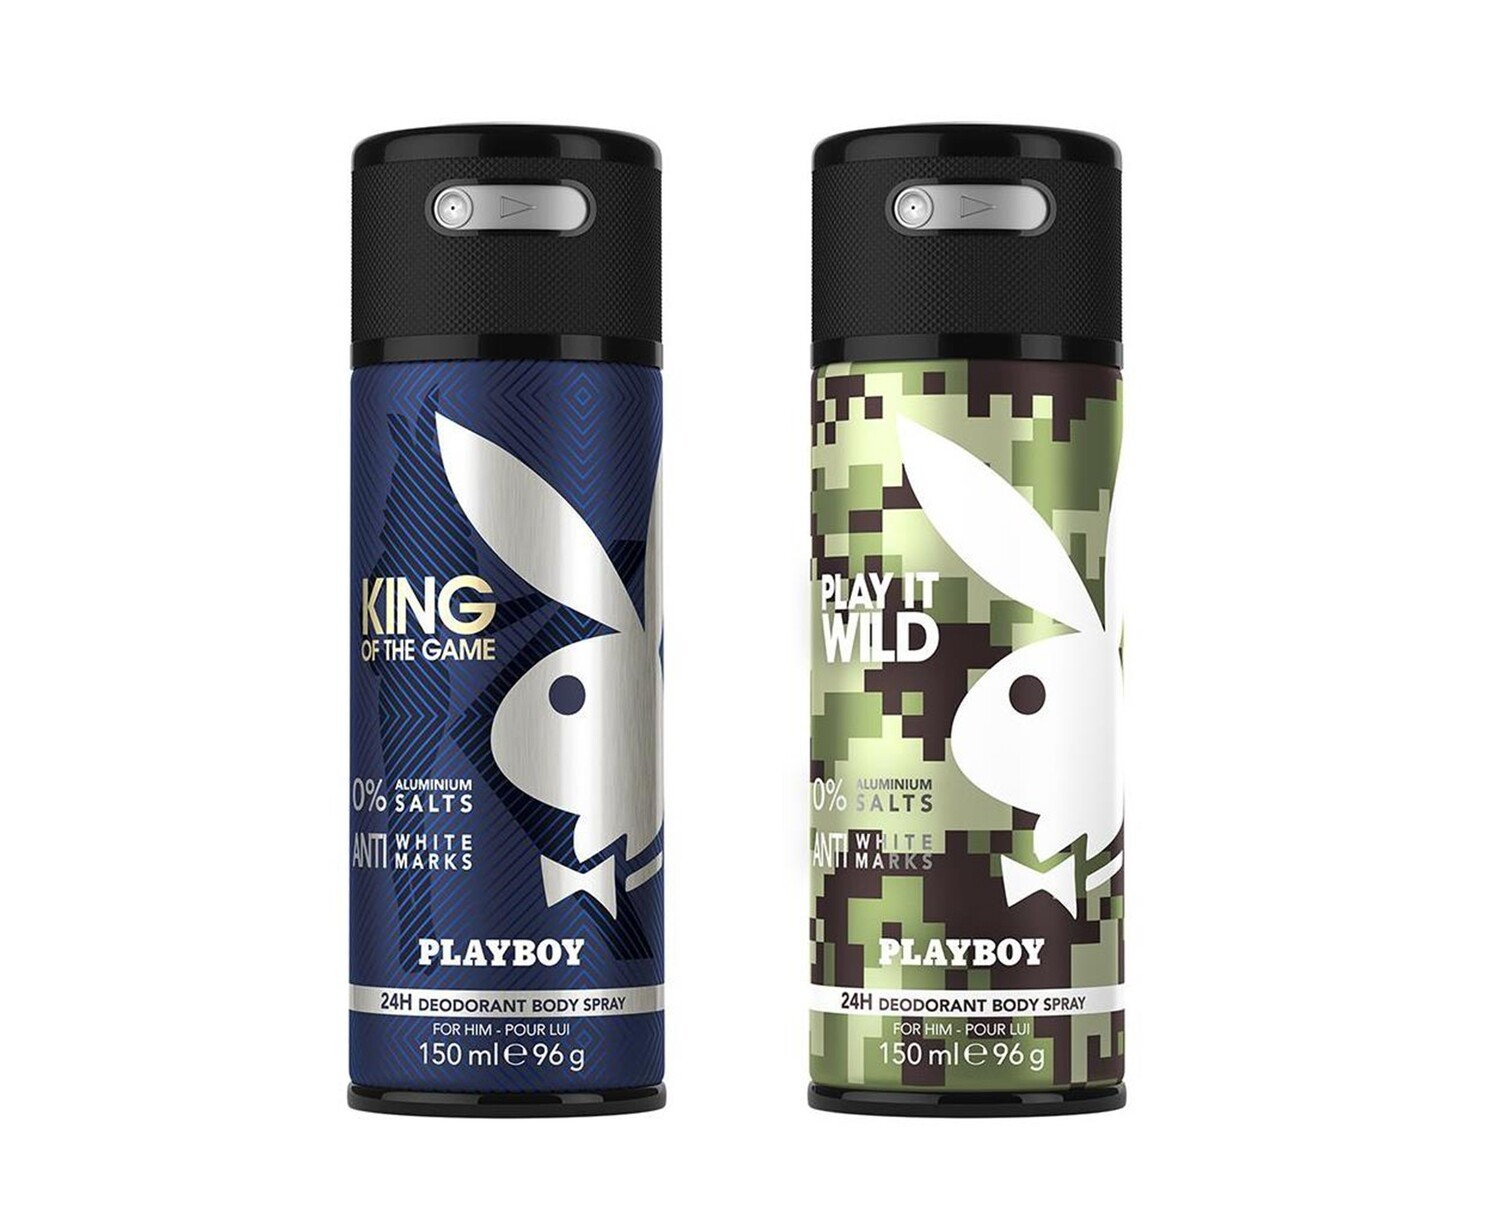 Playboy King + Wild Deo New Combo Set - Pack of 2 Men